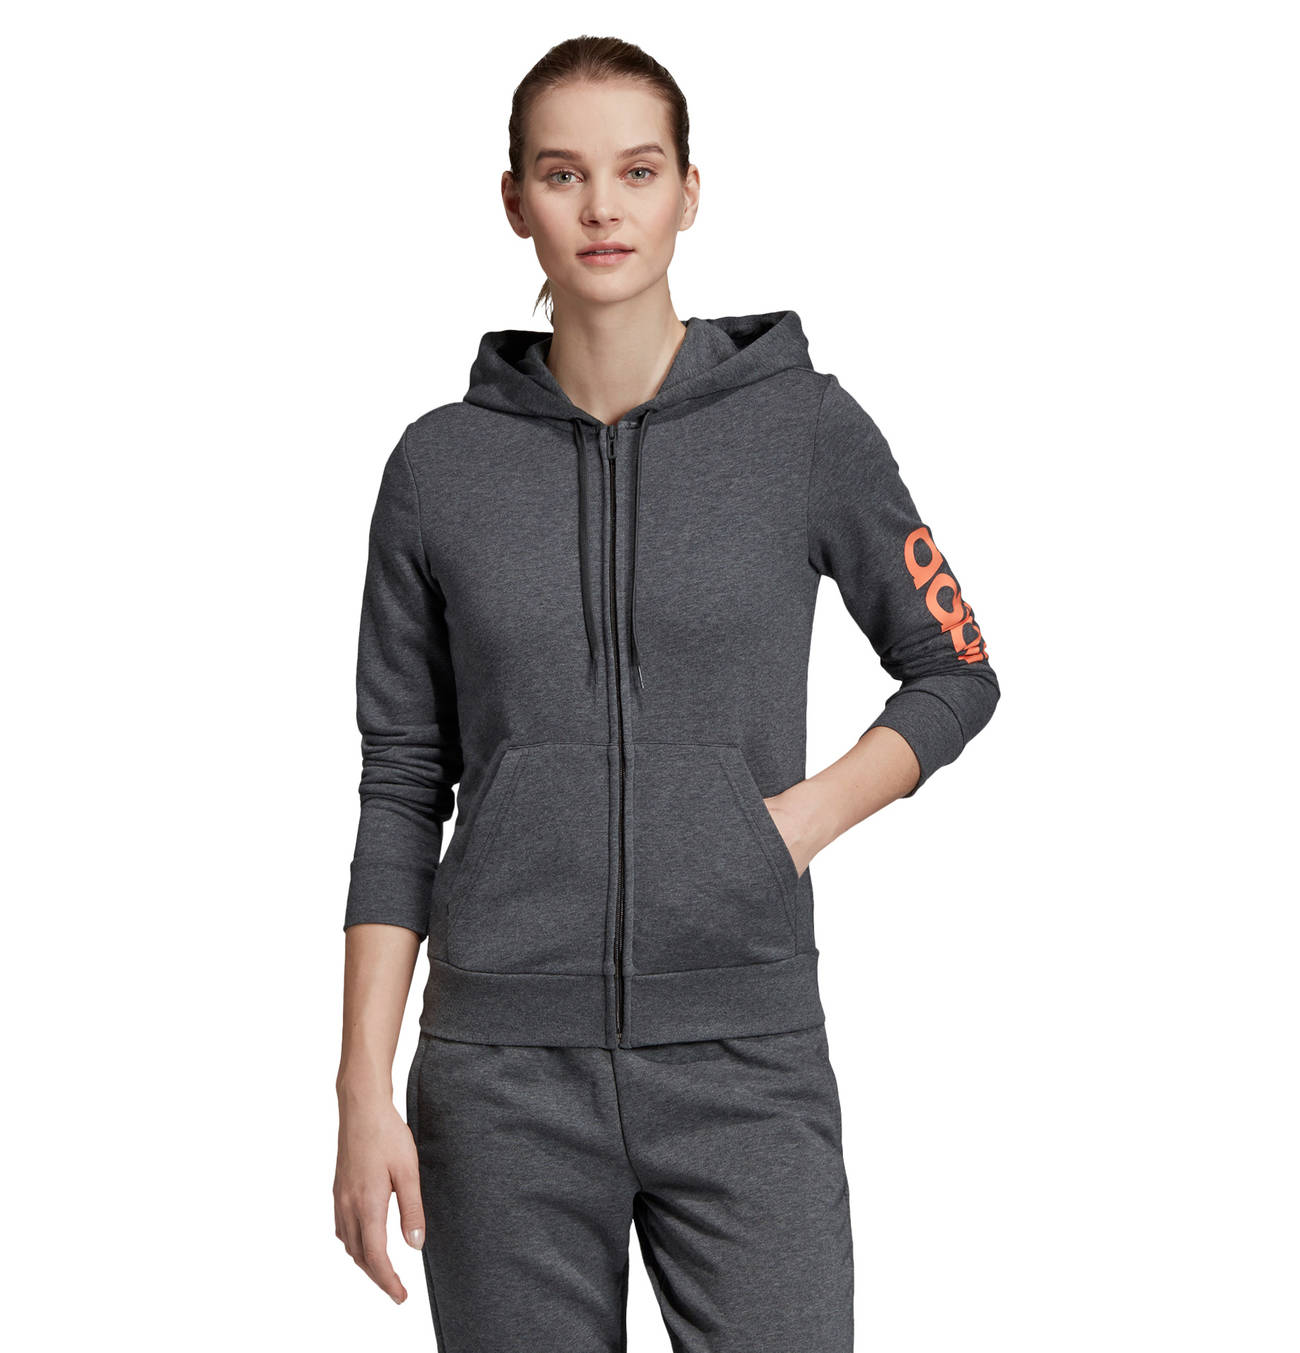 Adidas Damen Essentials Linear Kapuzenjacke Sweatjacke